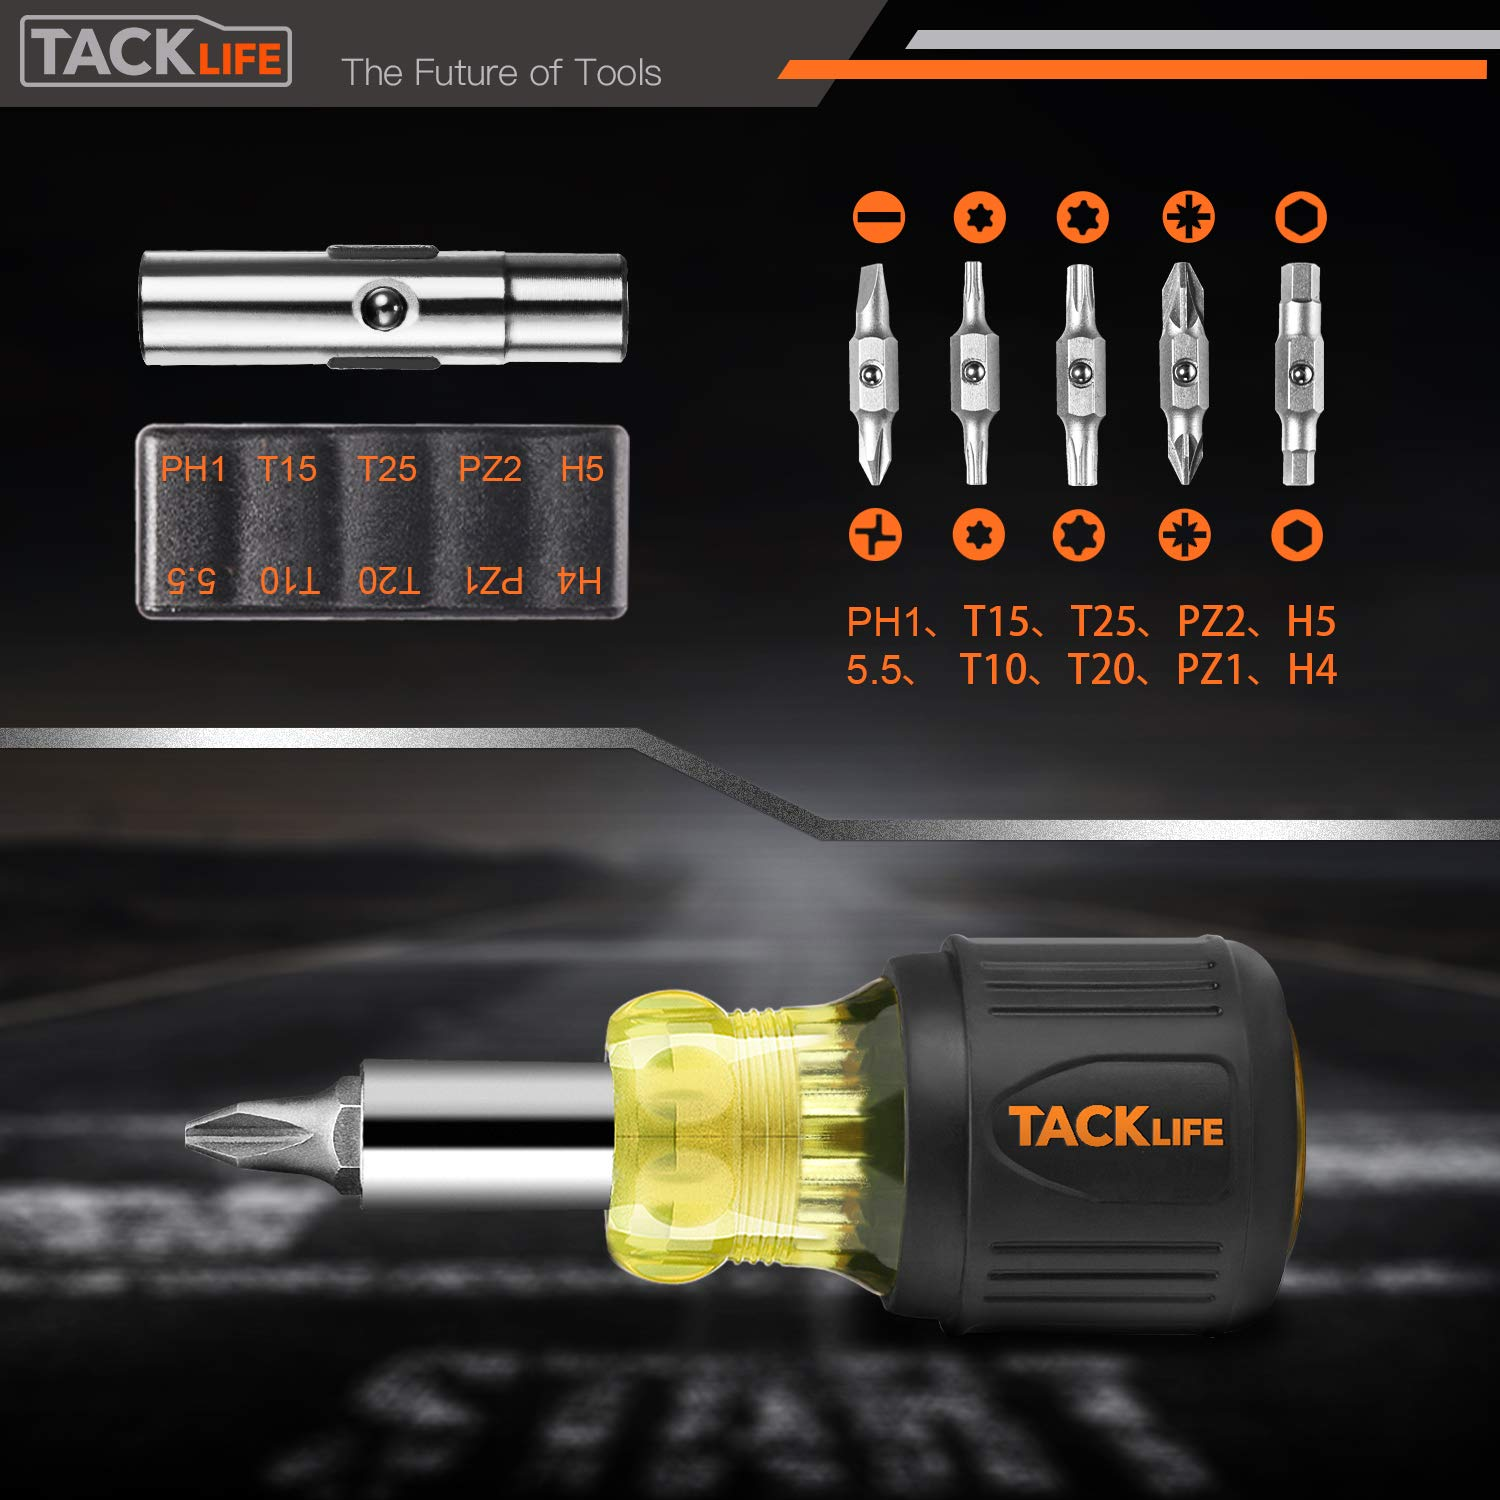 Nut Driver-HSS4B TACKLIFE 12-in-1 Stubby Screwdriver /& 2 Nut Driver Tight Spaces Interchangeable Multi-bit Drives,Phillips Hexagon Pozidriv Slotted Torx